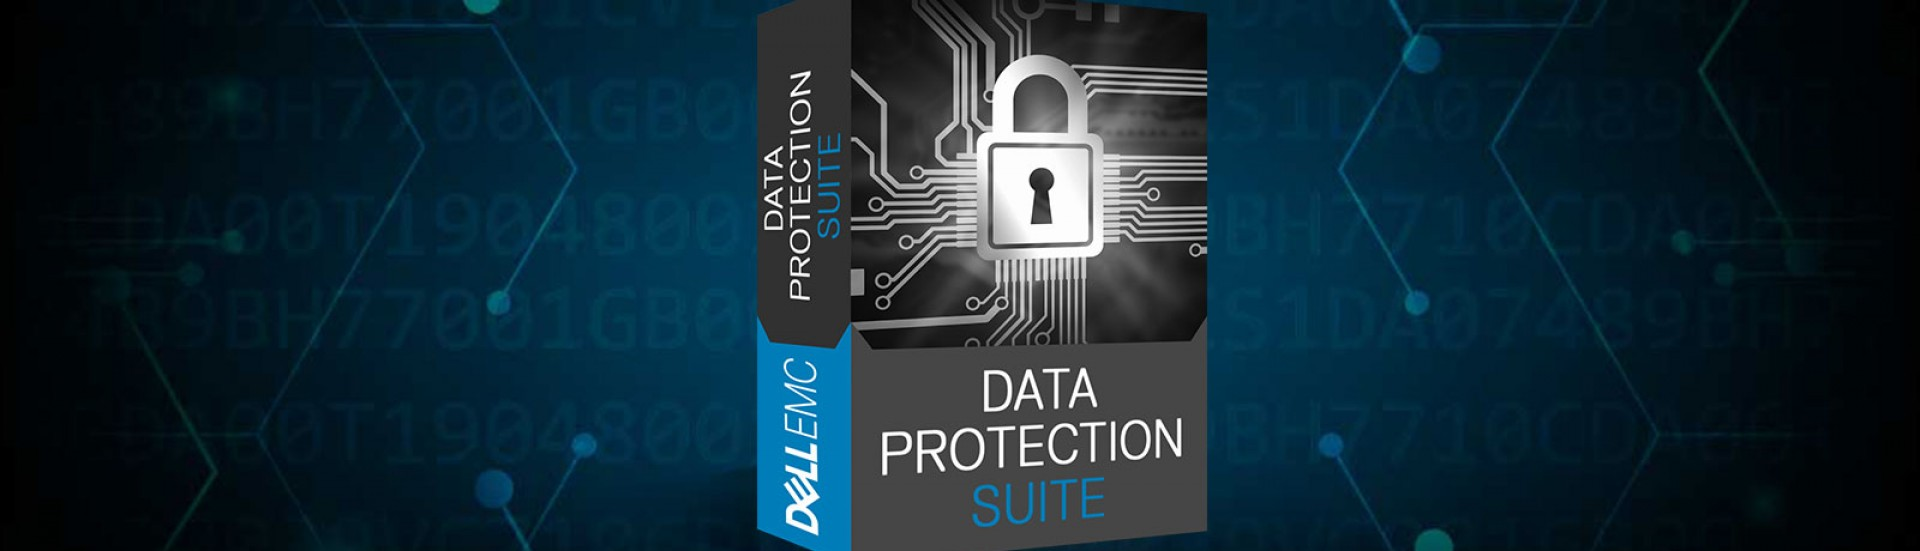 Data Protection Suite for VMware czyli super bundle backupowy